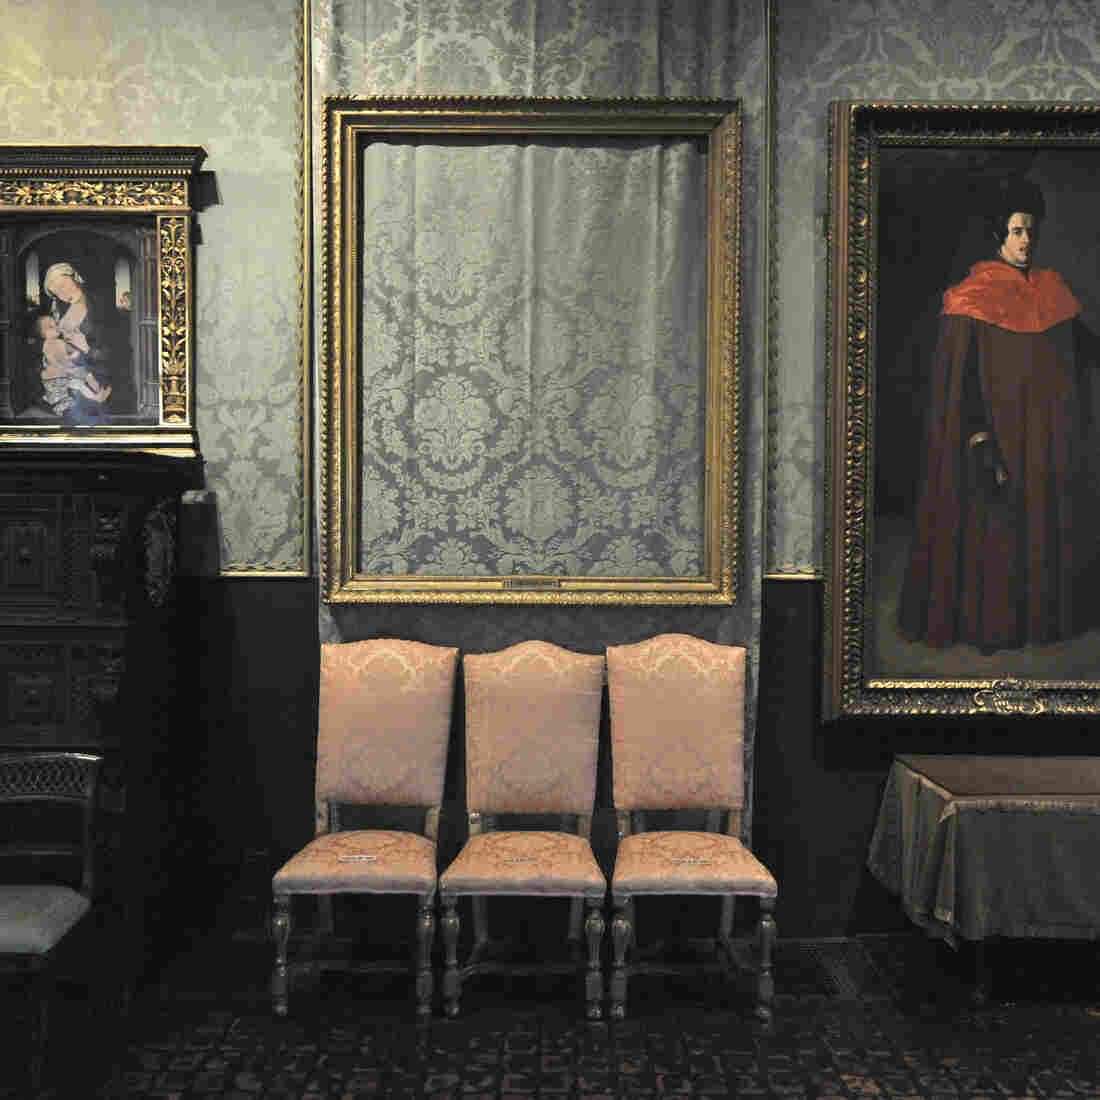 The empty frame from which thieves cut Rembrandt's The Storm on the Sea of Galilee remains on display at the Isabella Stewart Gardner Museum in Boston. The painting was one of 13 works stolen from the museum in 1990.